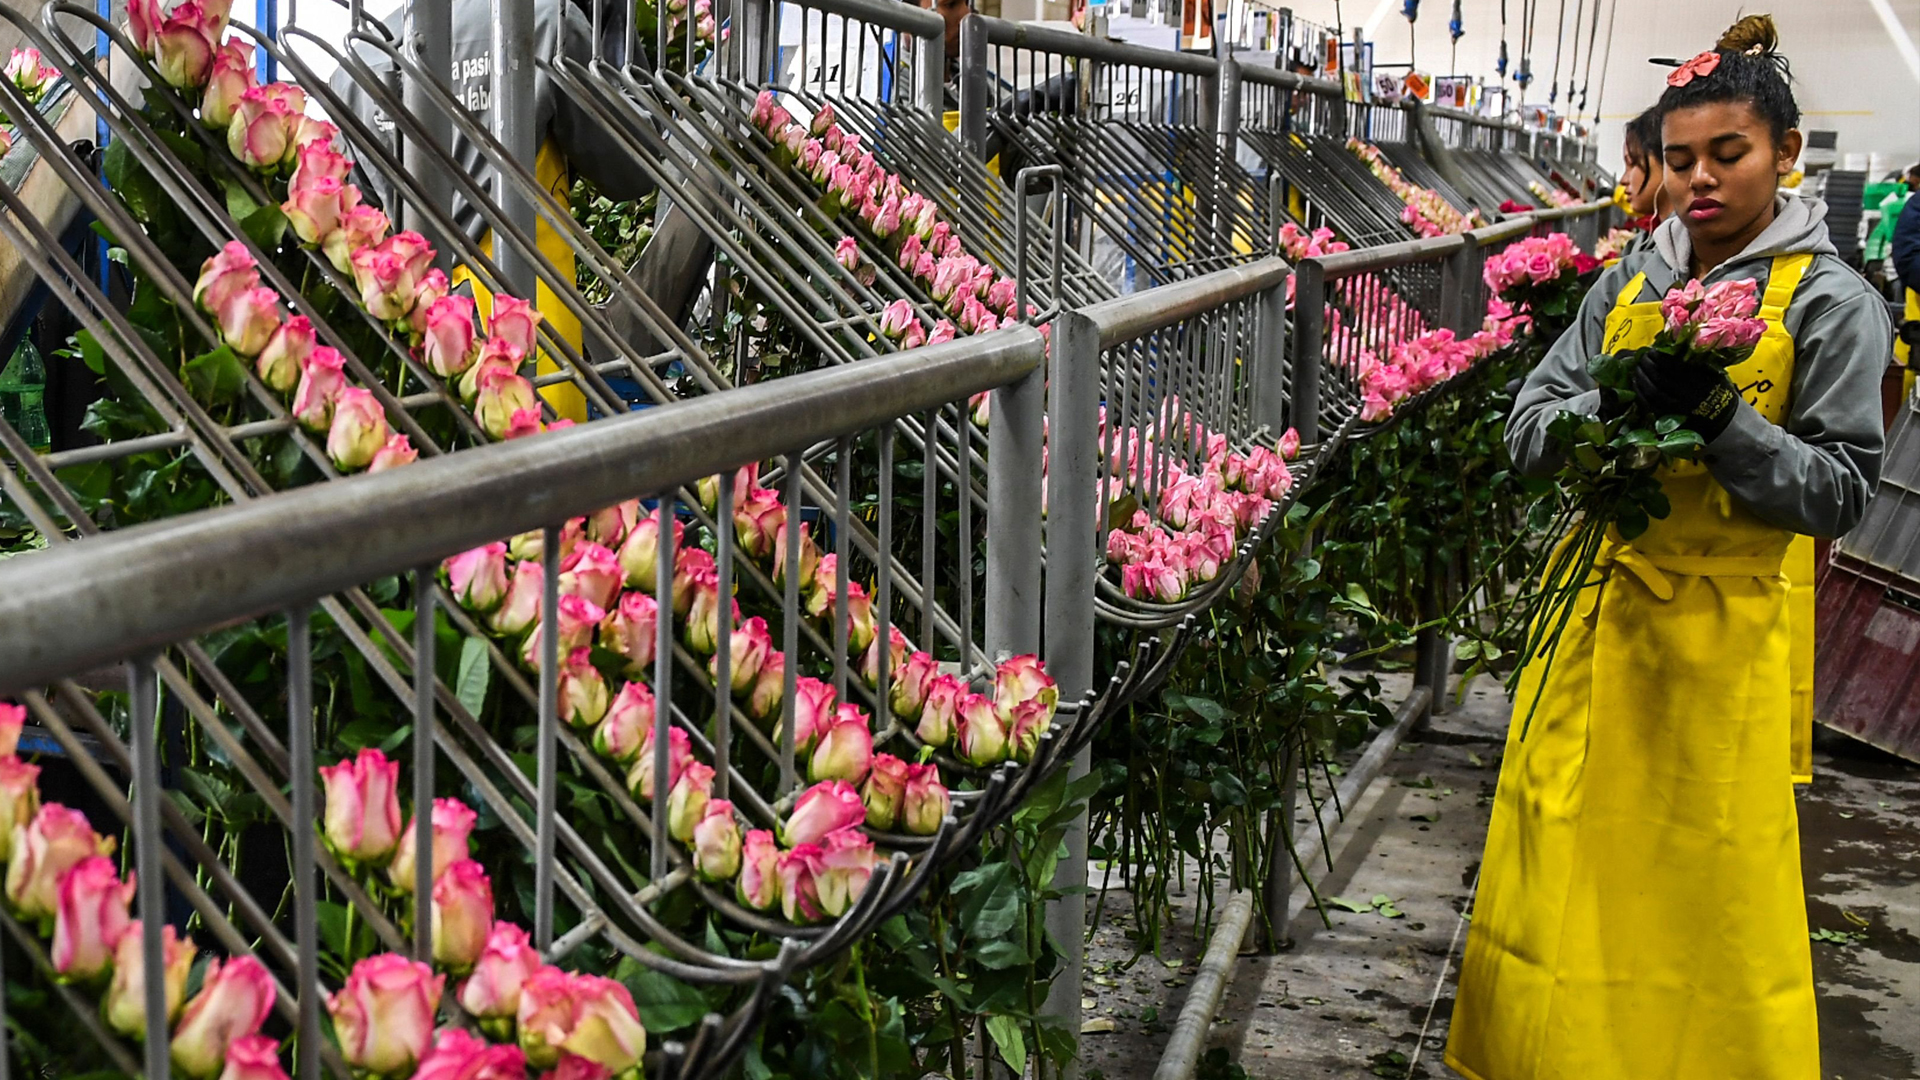 Colombia's-cash-crop:-Flowers-for-Valentine's